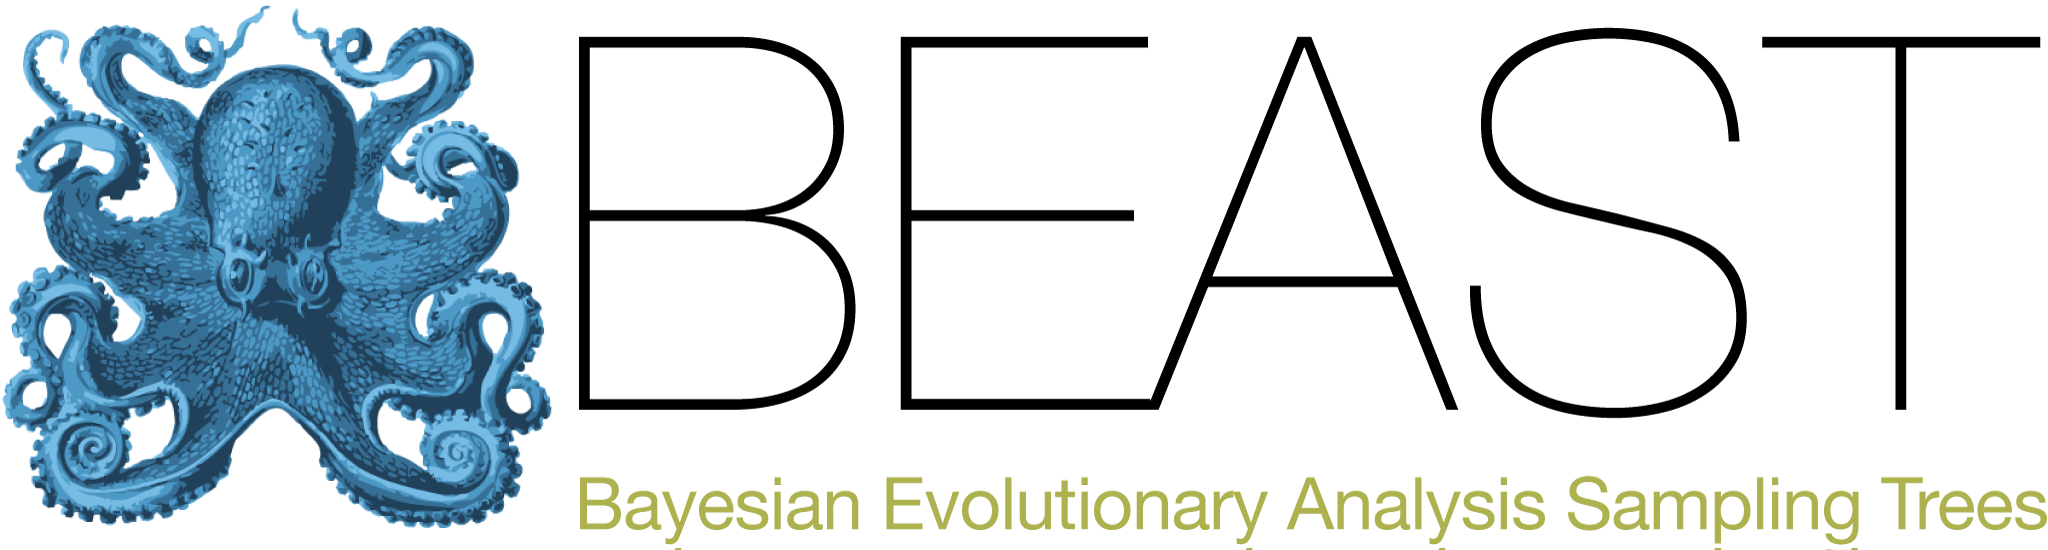 BEAST Software - Bayesian Evolutionary Analysis Sampling Trees